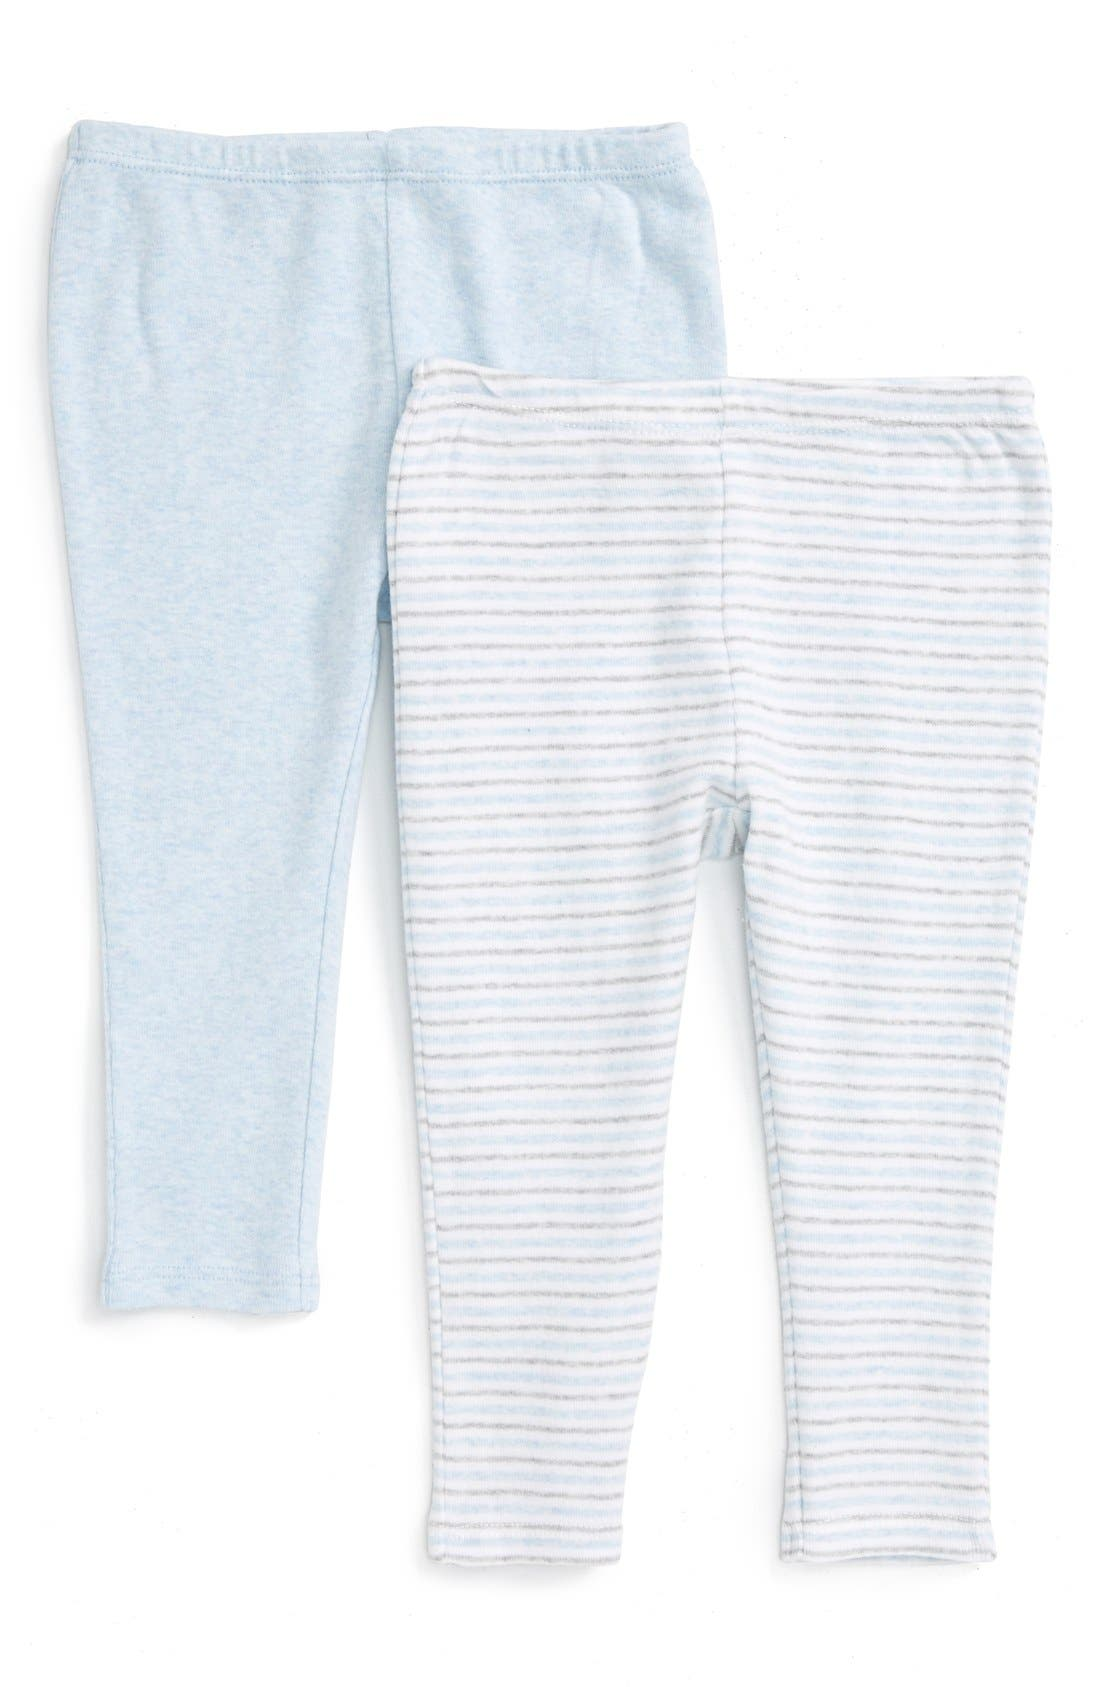 Nordstrom Baby 2-Pack Pants (Baby)